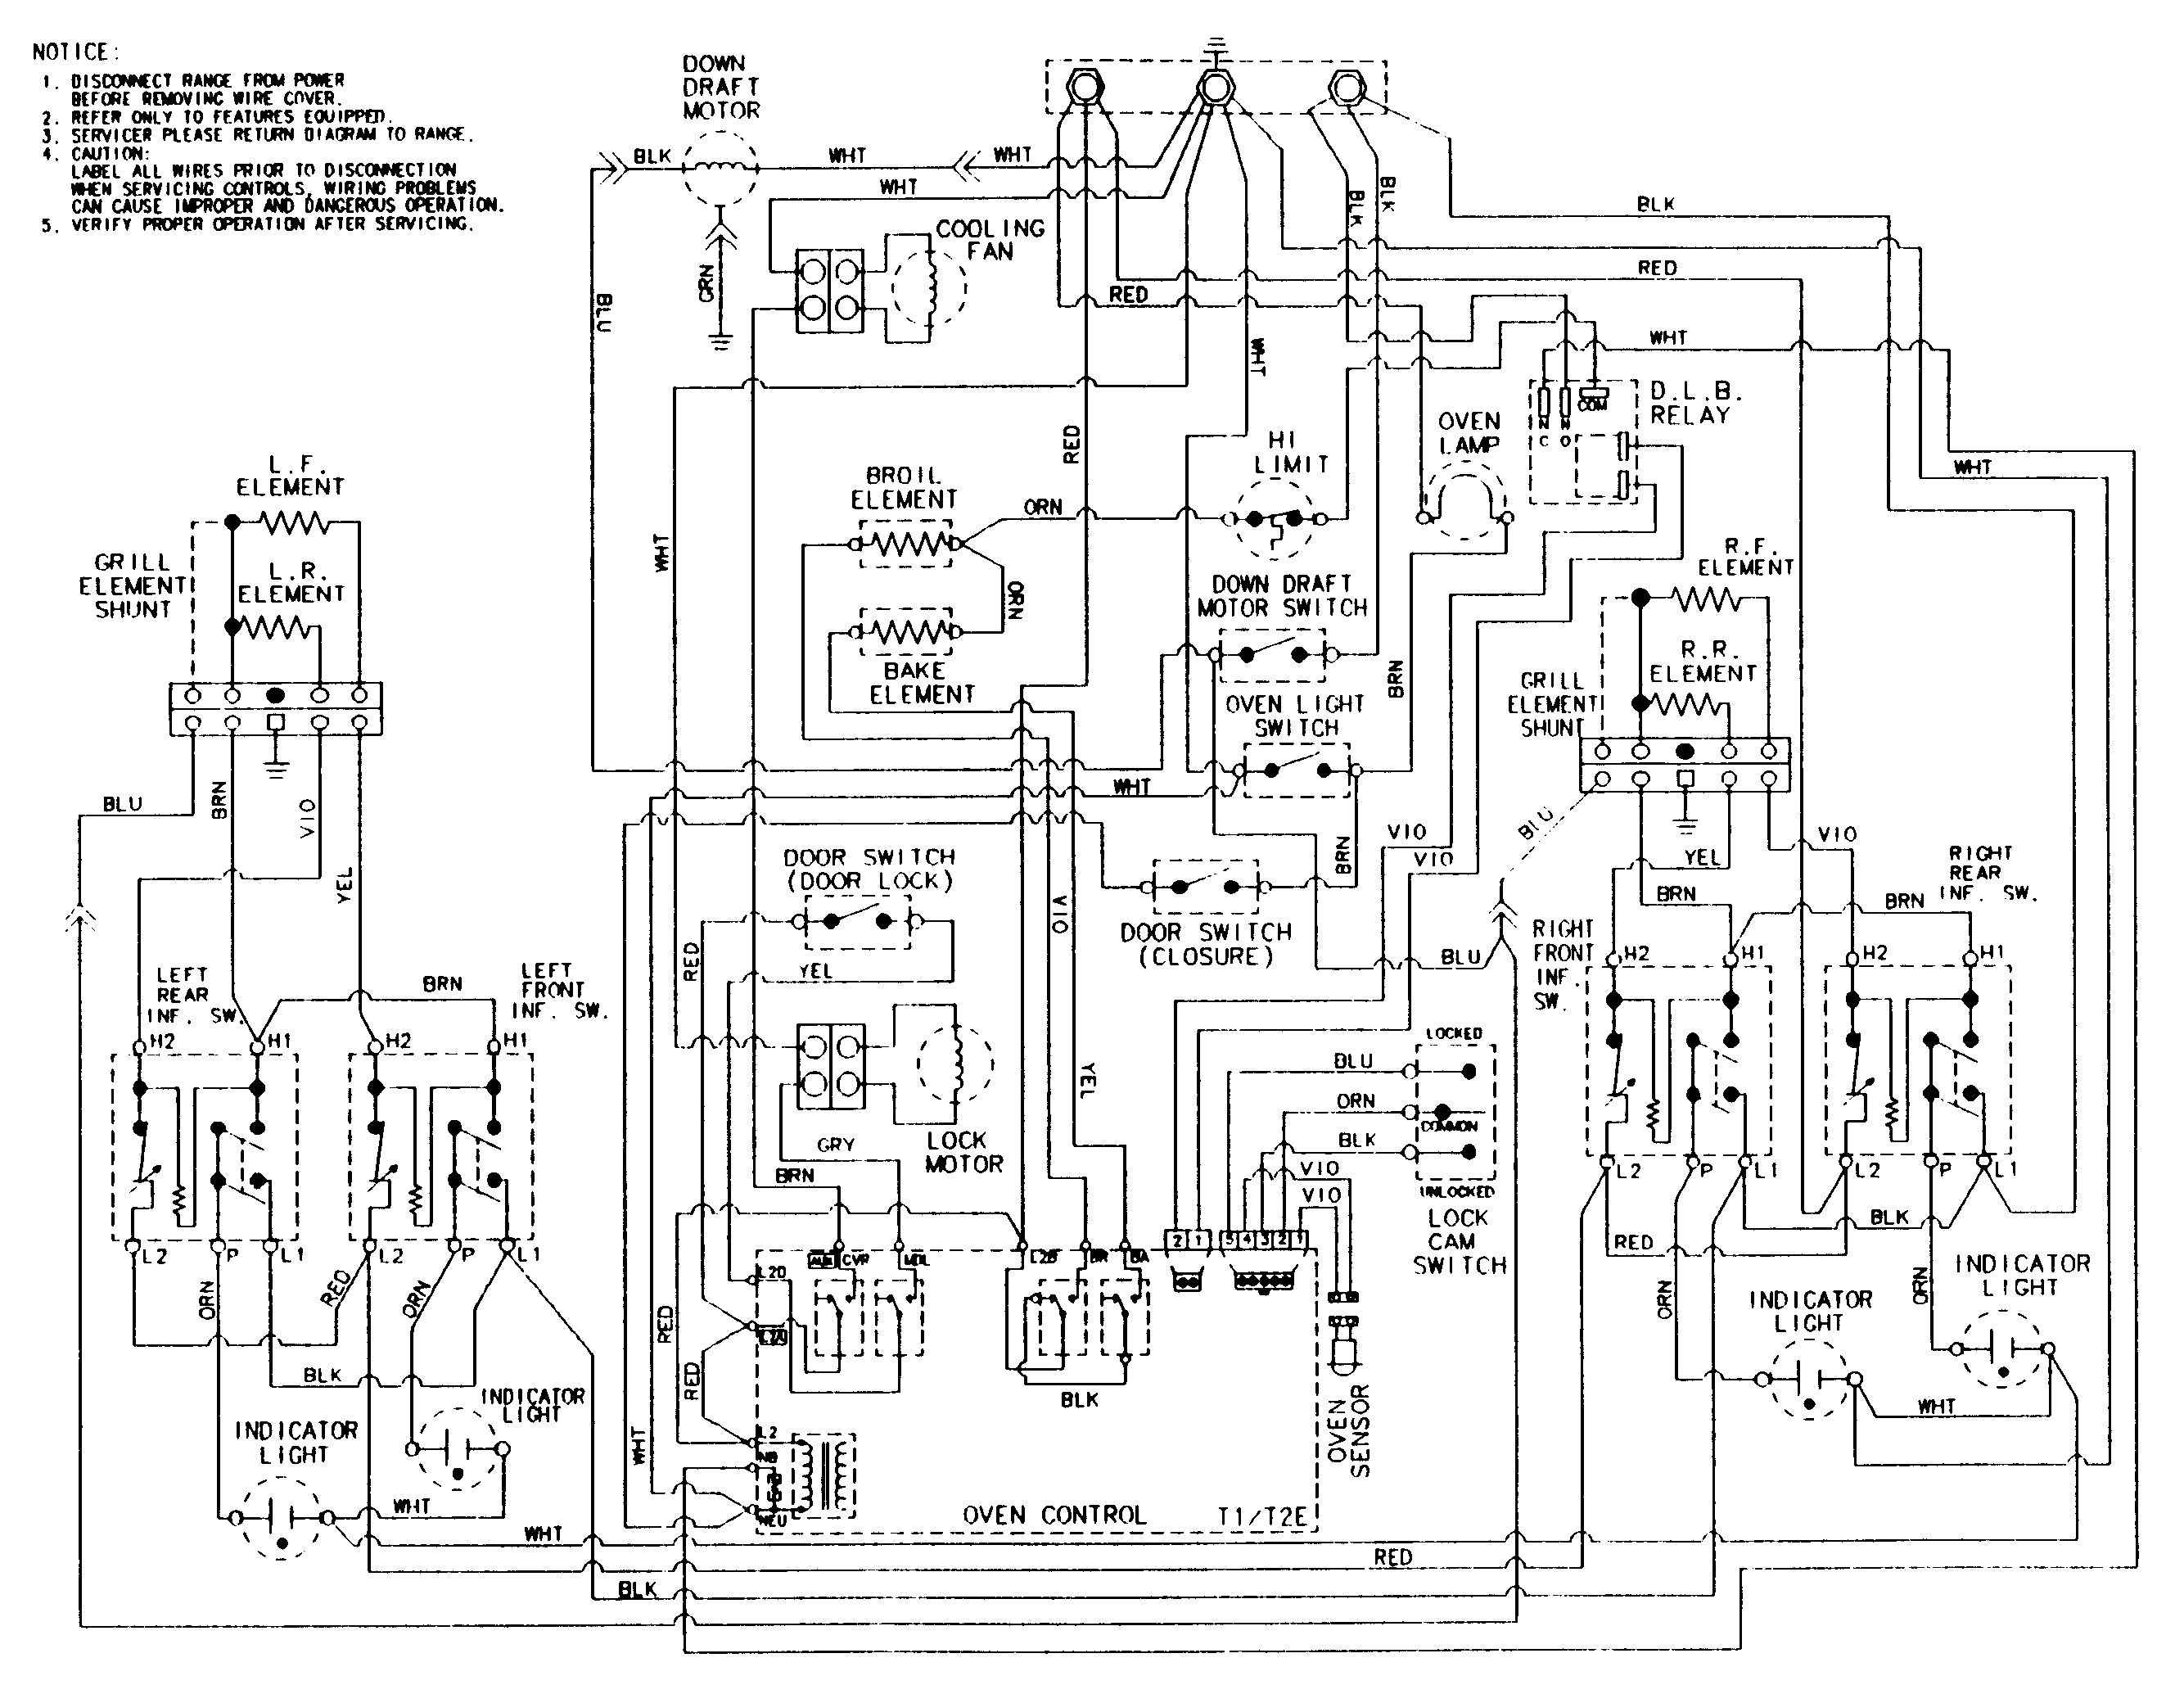 Gas Stove Schematic Diagram Wiring Will Be A Thing Ge Jenn Air Sve47100b Electric Slide In Range Timer Samsung Parts